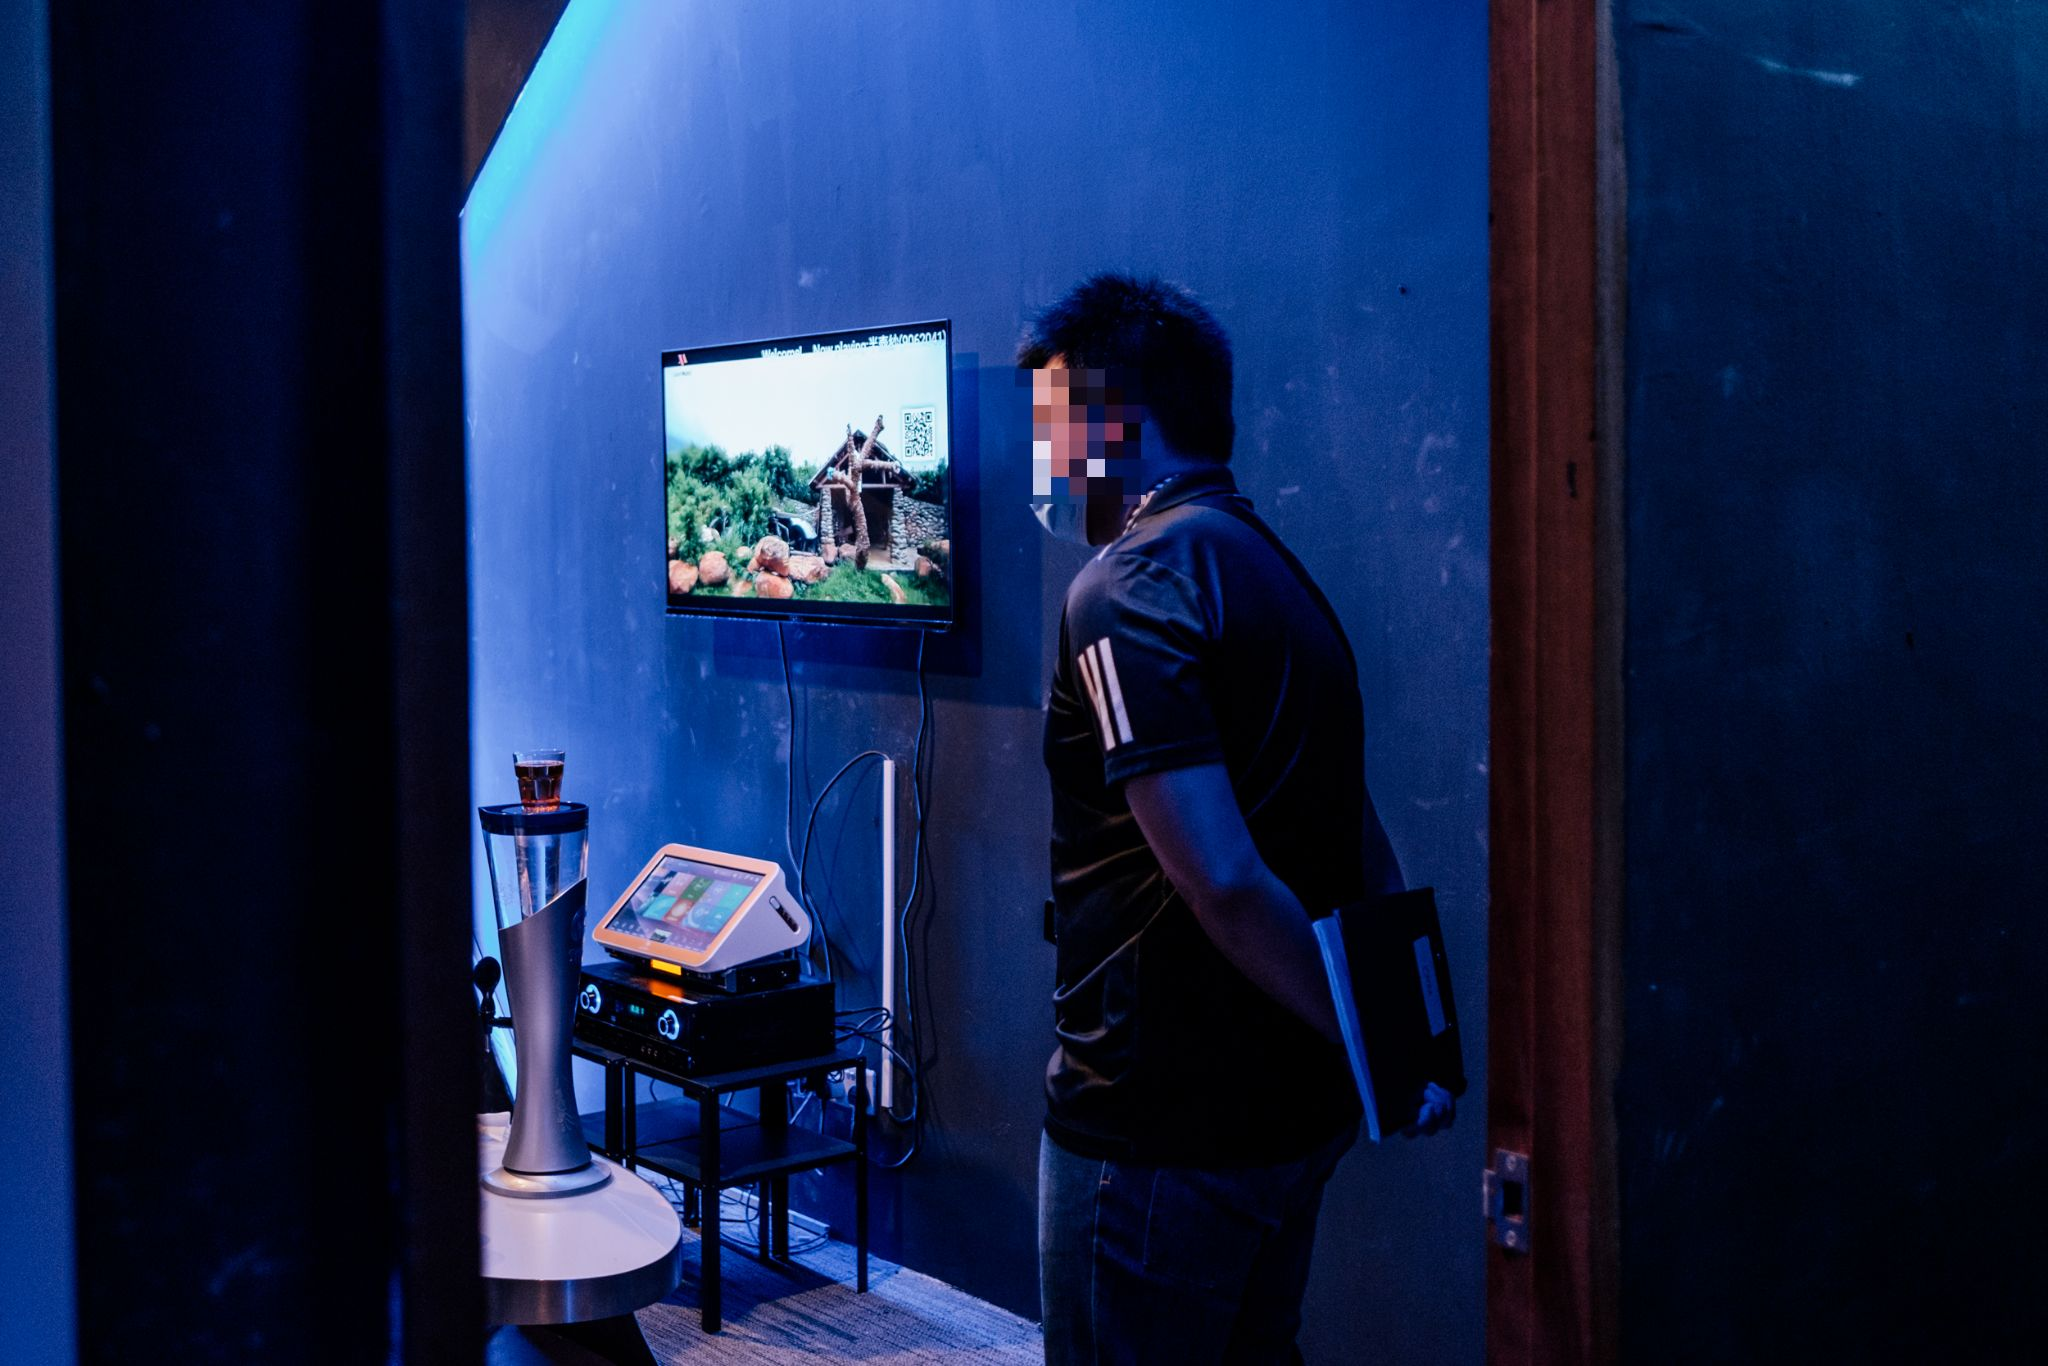 Image of a police officer standing watch in the rooms